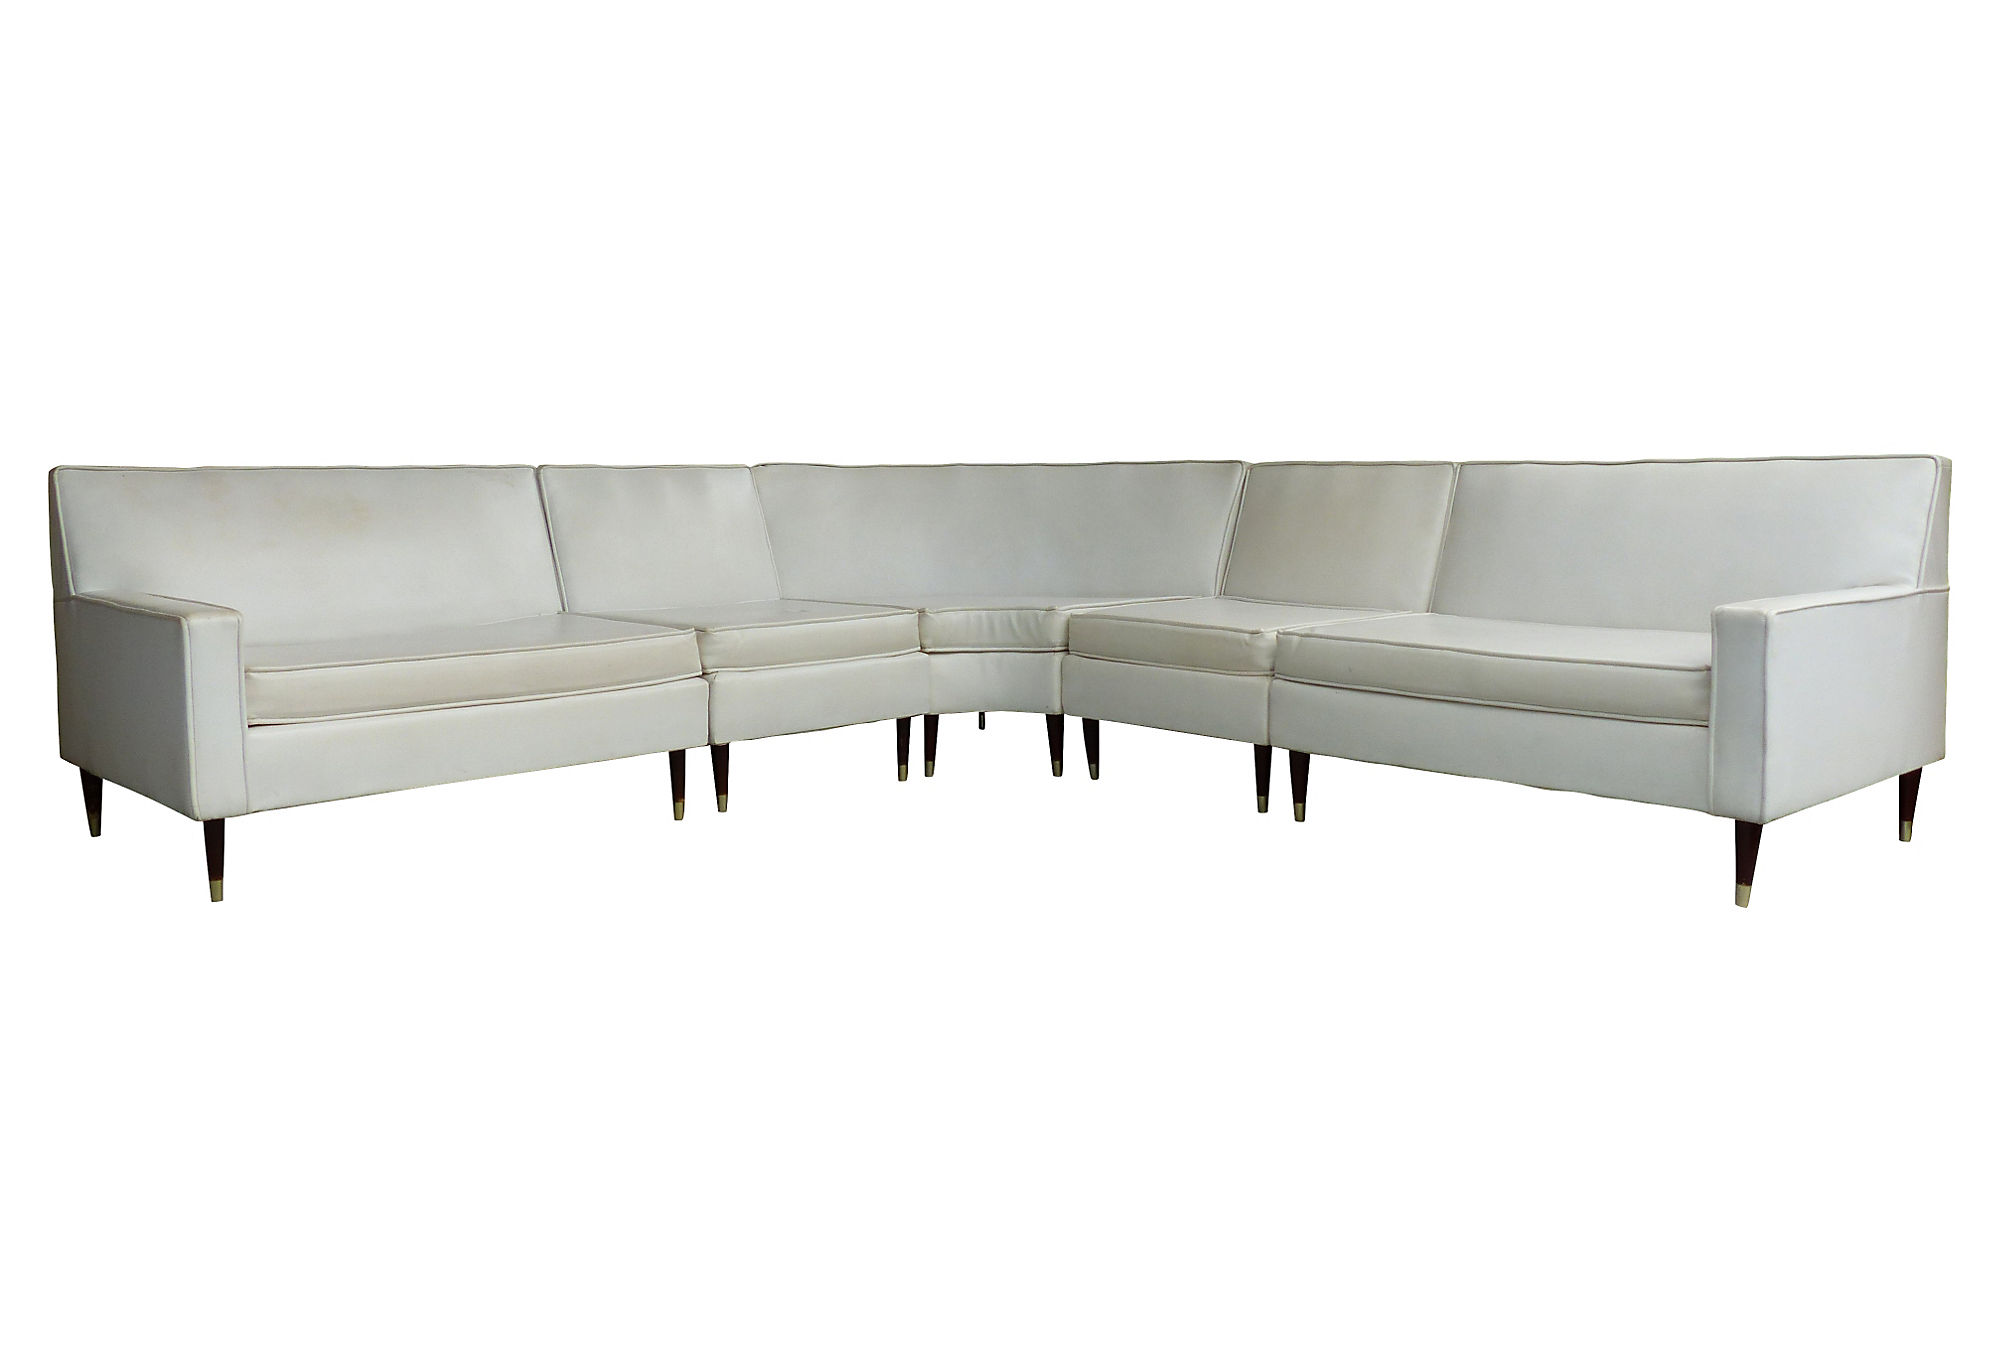 Mid century modern sectional sofa modernism for Modern sectional sofas